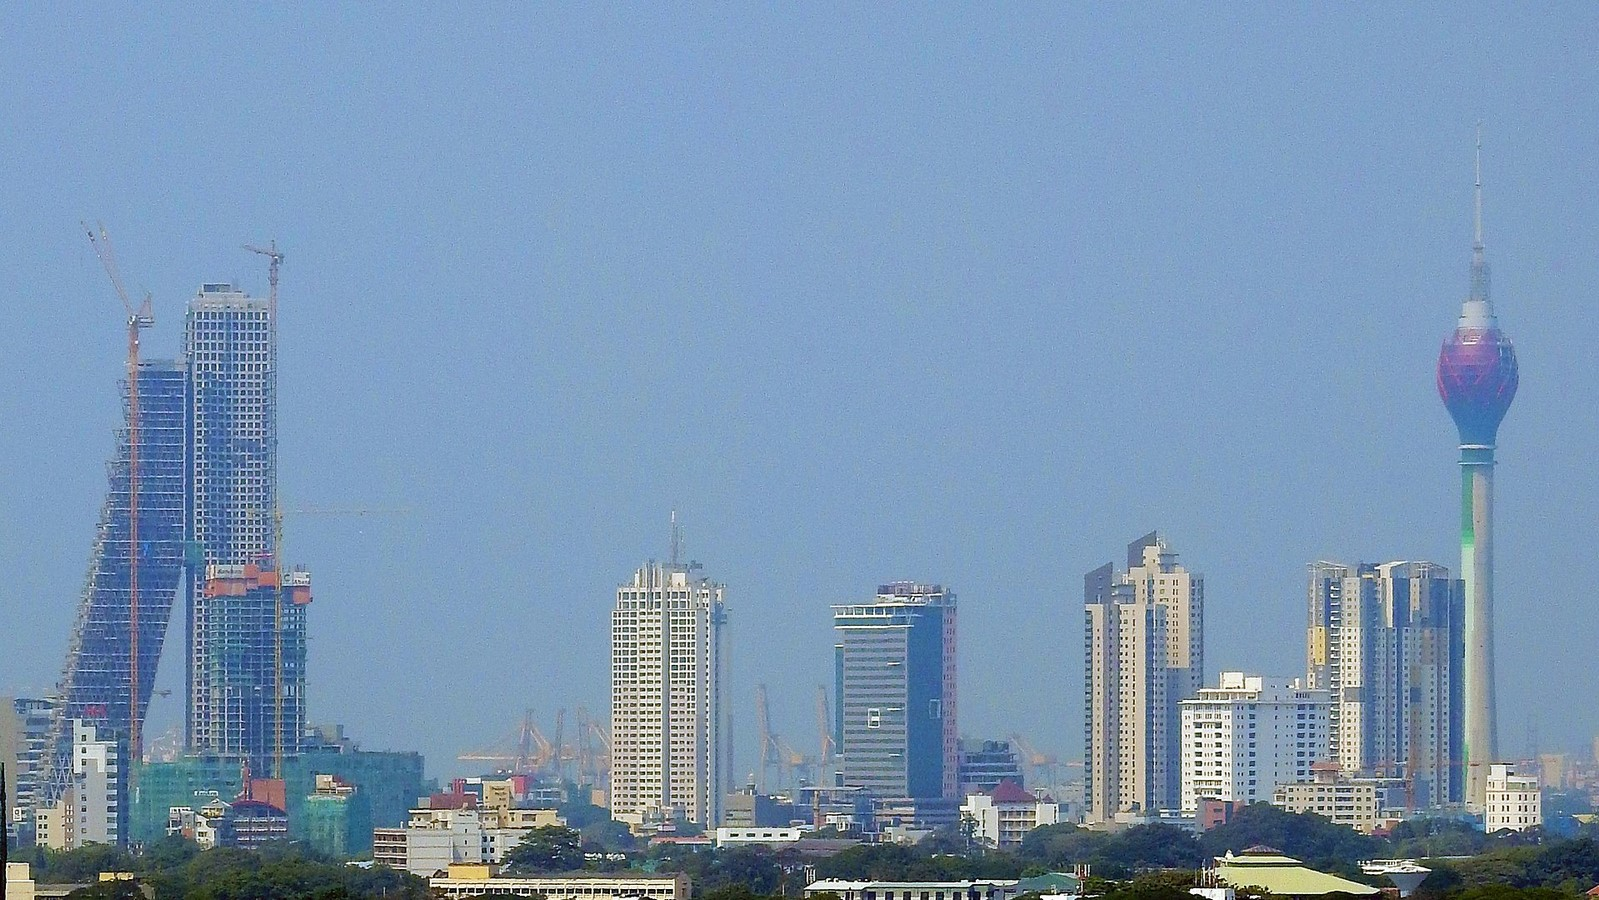 Architecture of Cities: Colombo: Fastest-growing city in the world - Sheet6